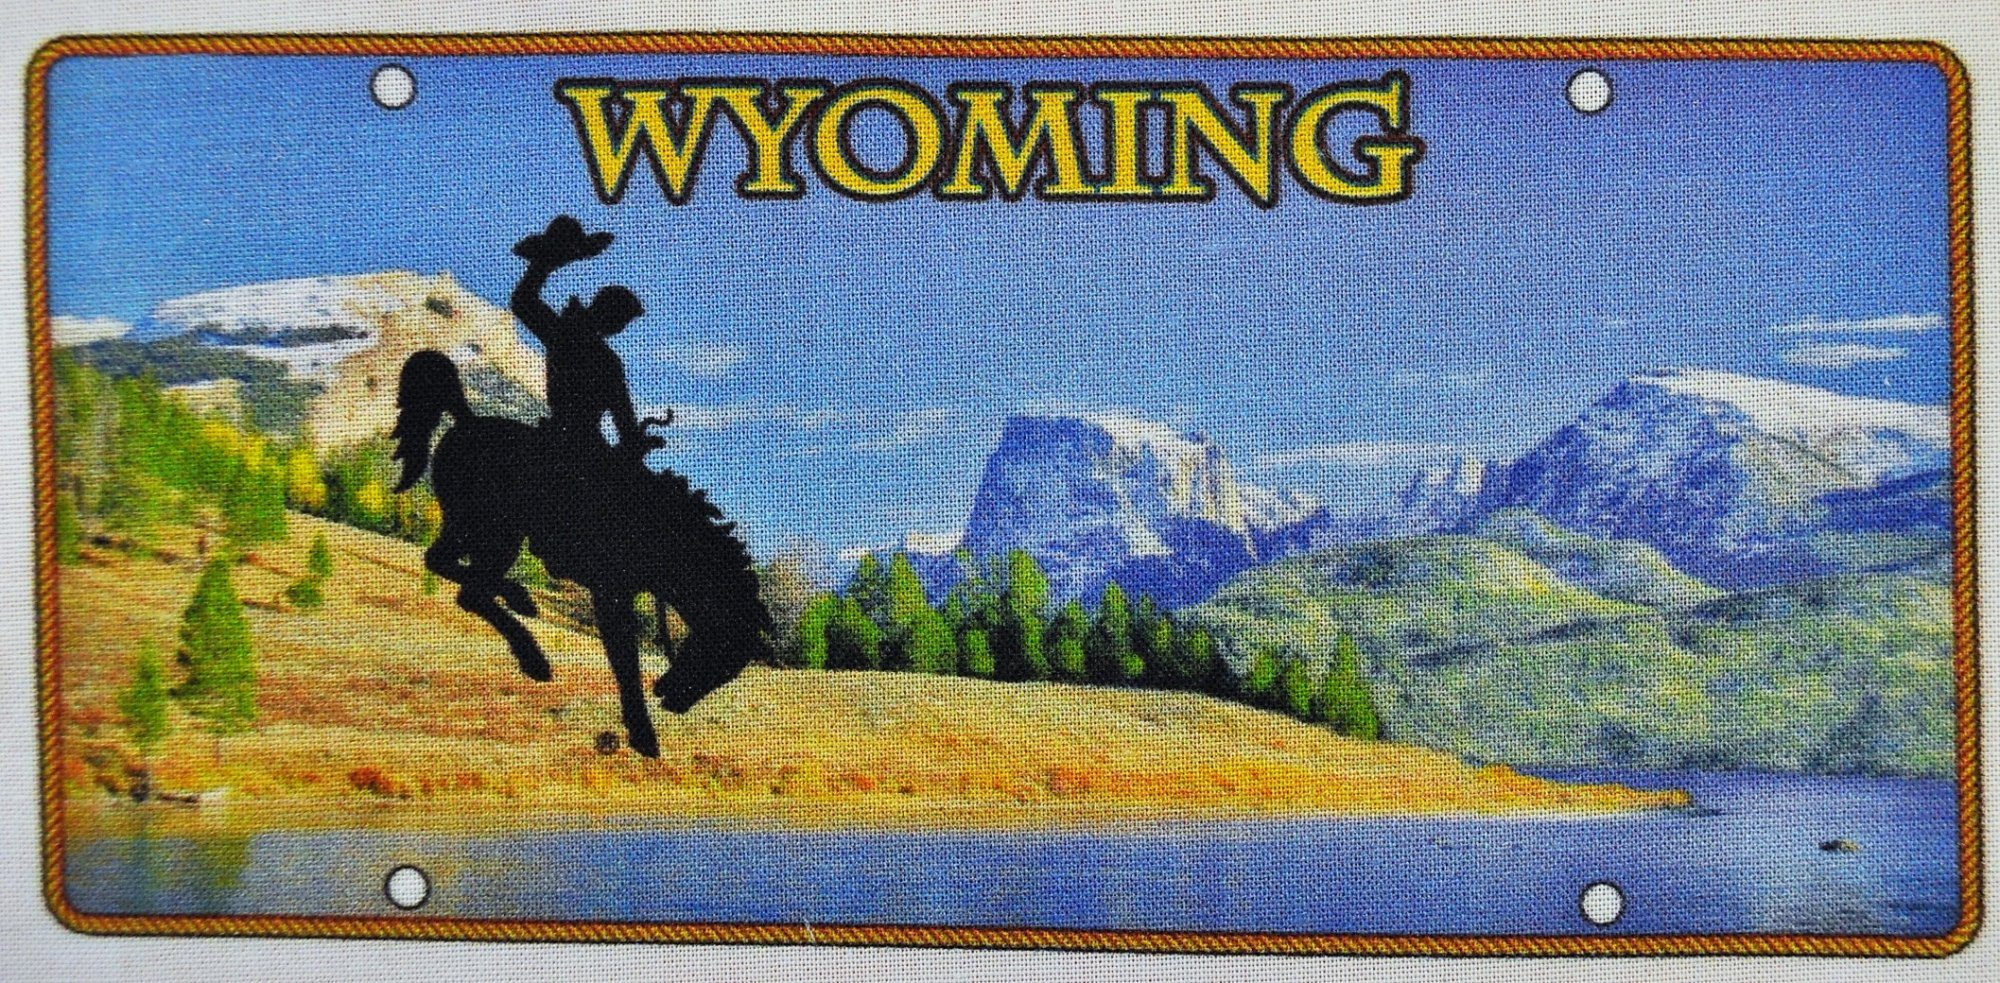 Wyoming License Plate - 3.25 x 7